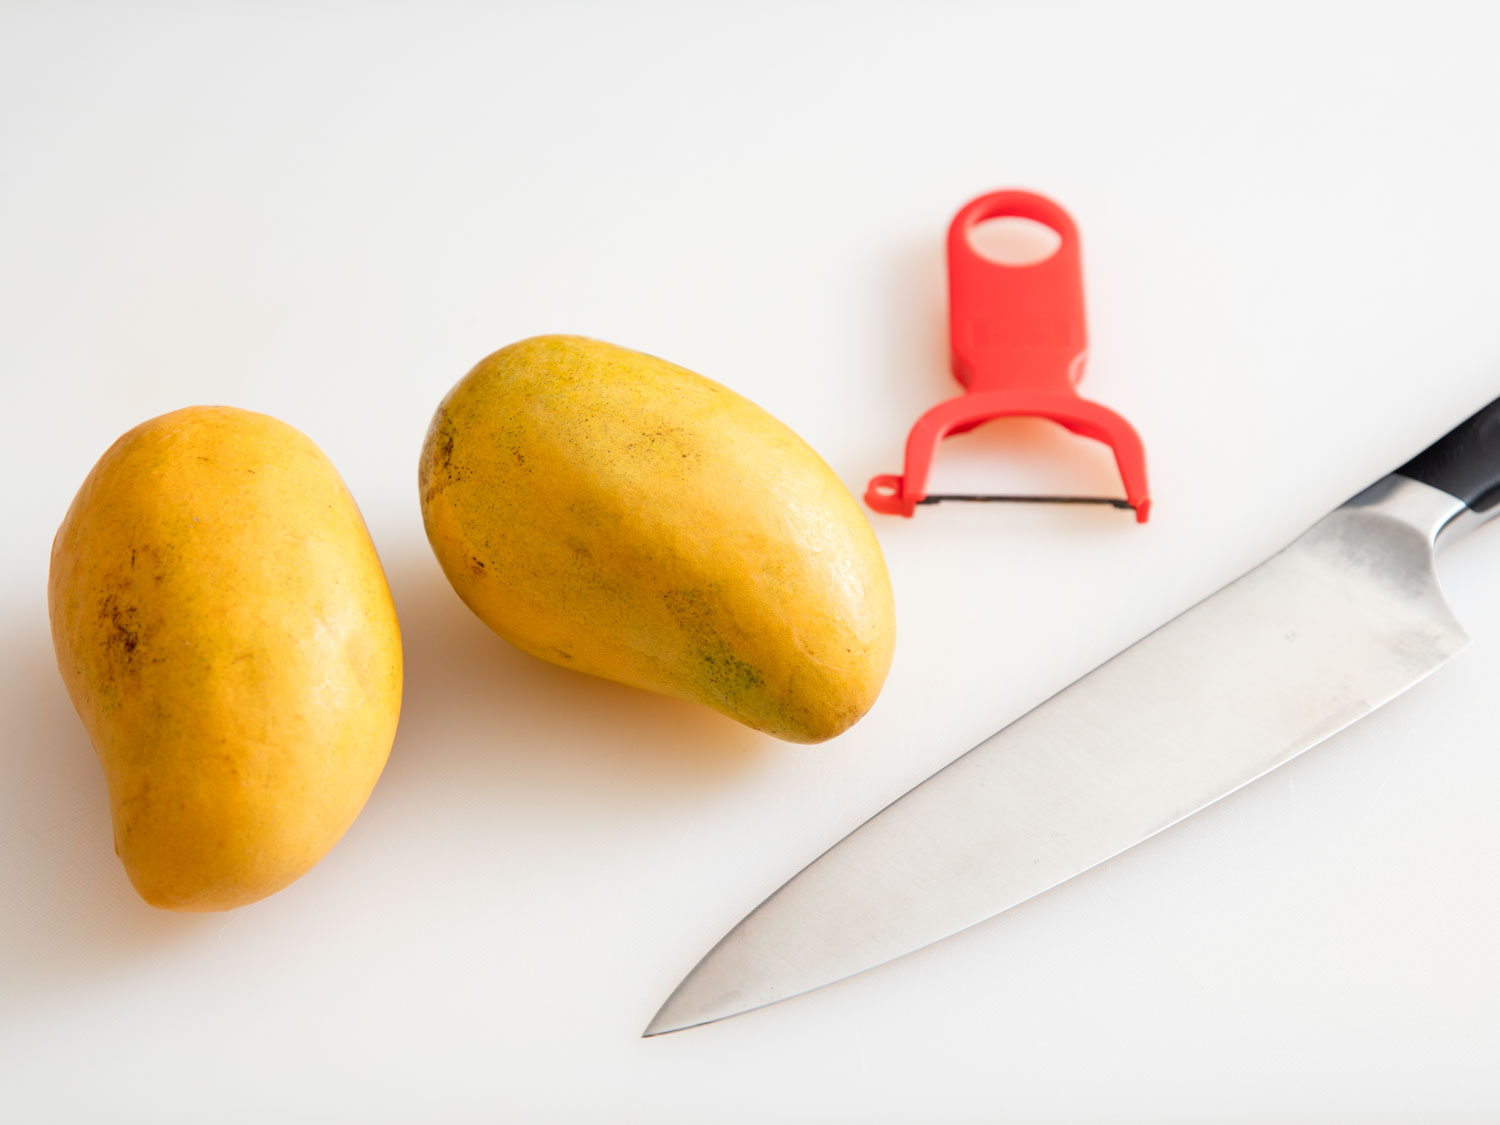 Mangoes, thin skinned